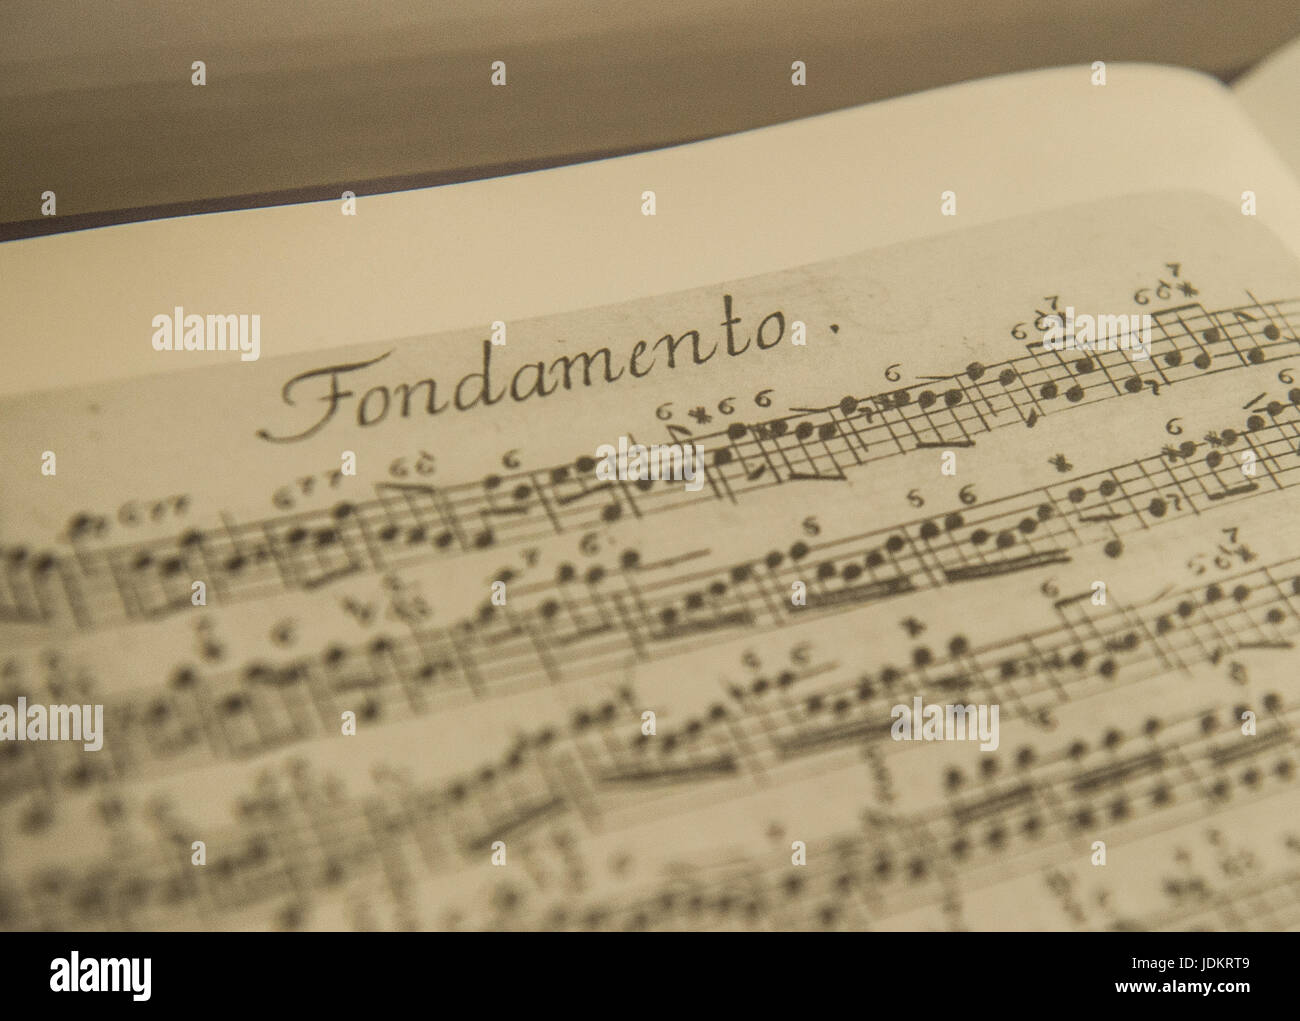 Hamburg, Germany. 13th June, 2017. A music sheet showing a work by composer Georg Philipp Telemann (1681-1767) in - Stock Image